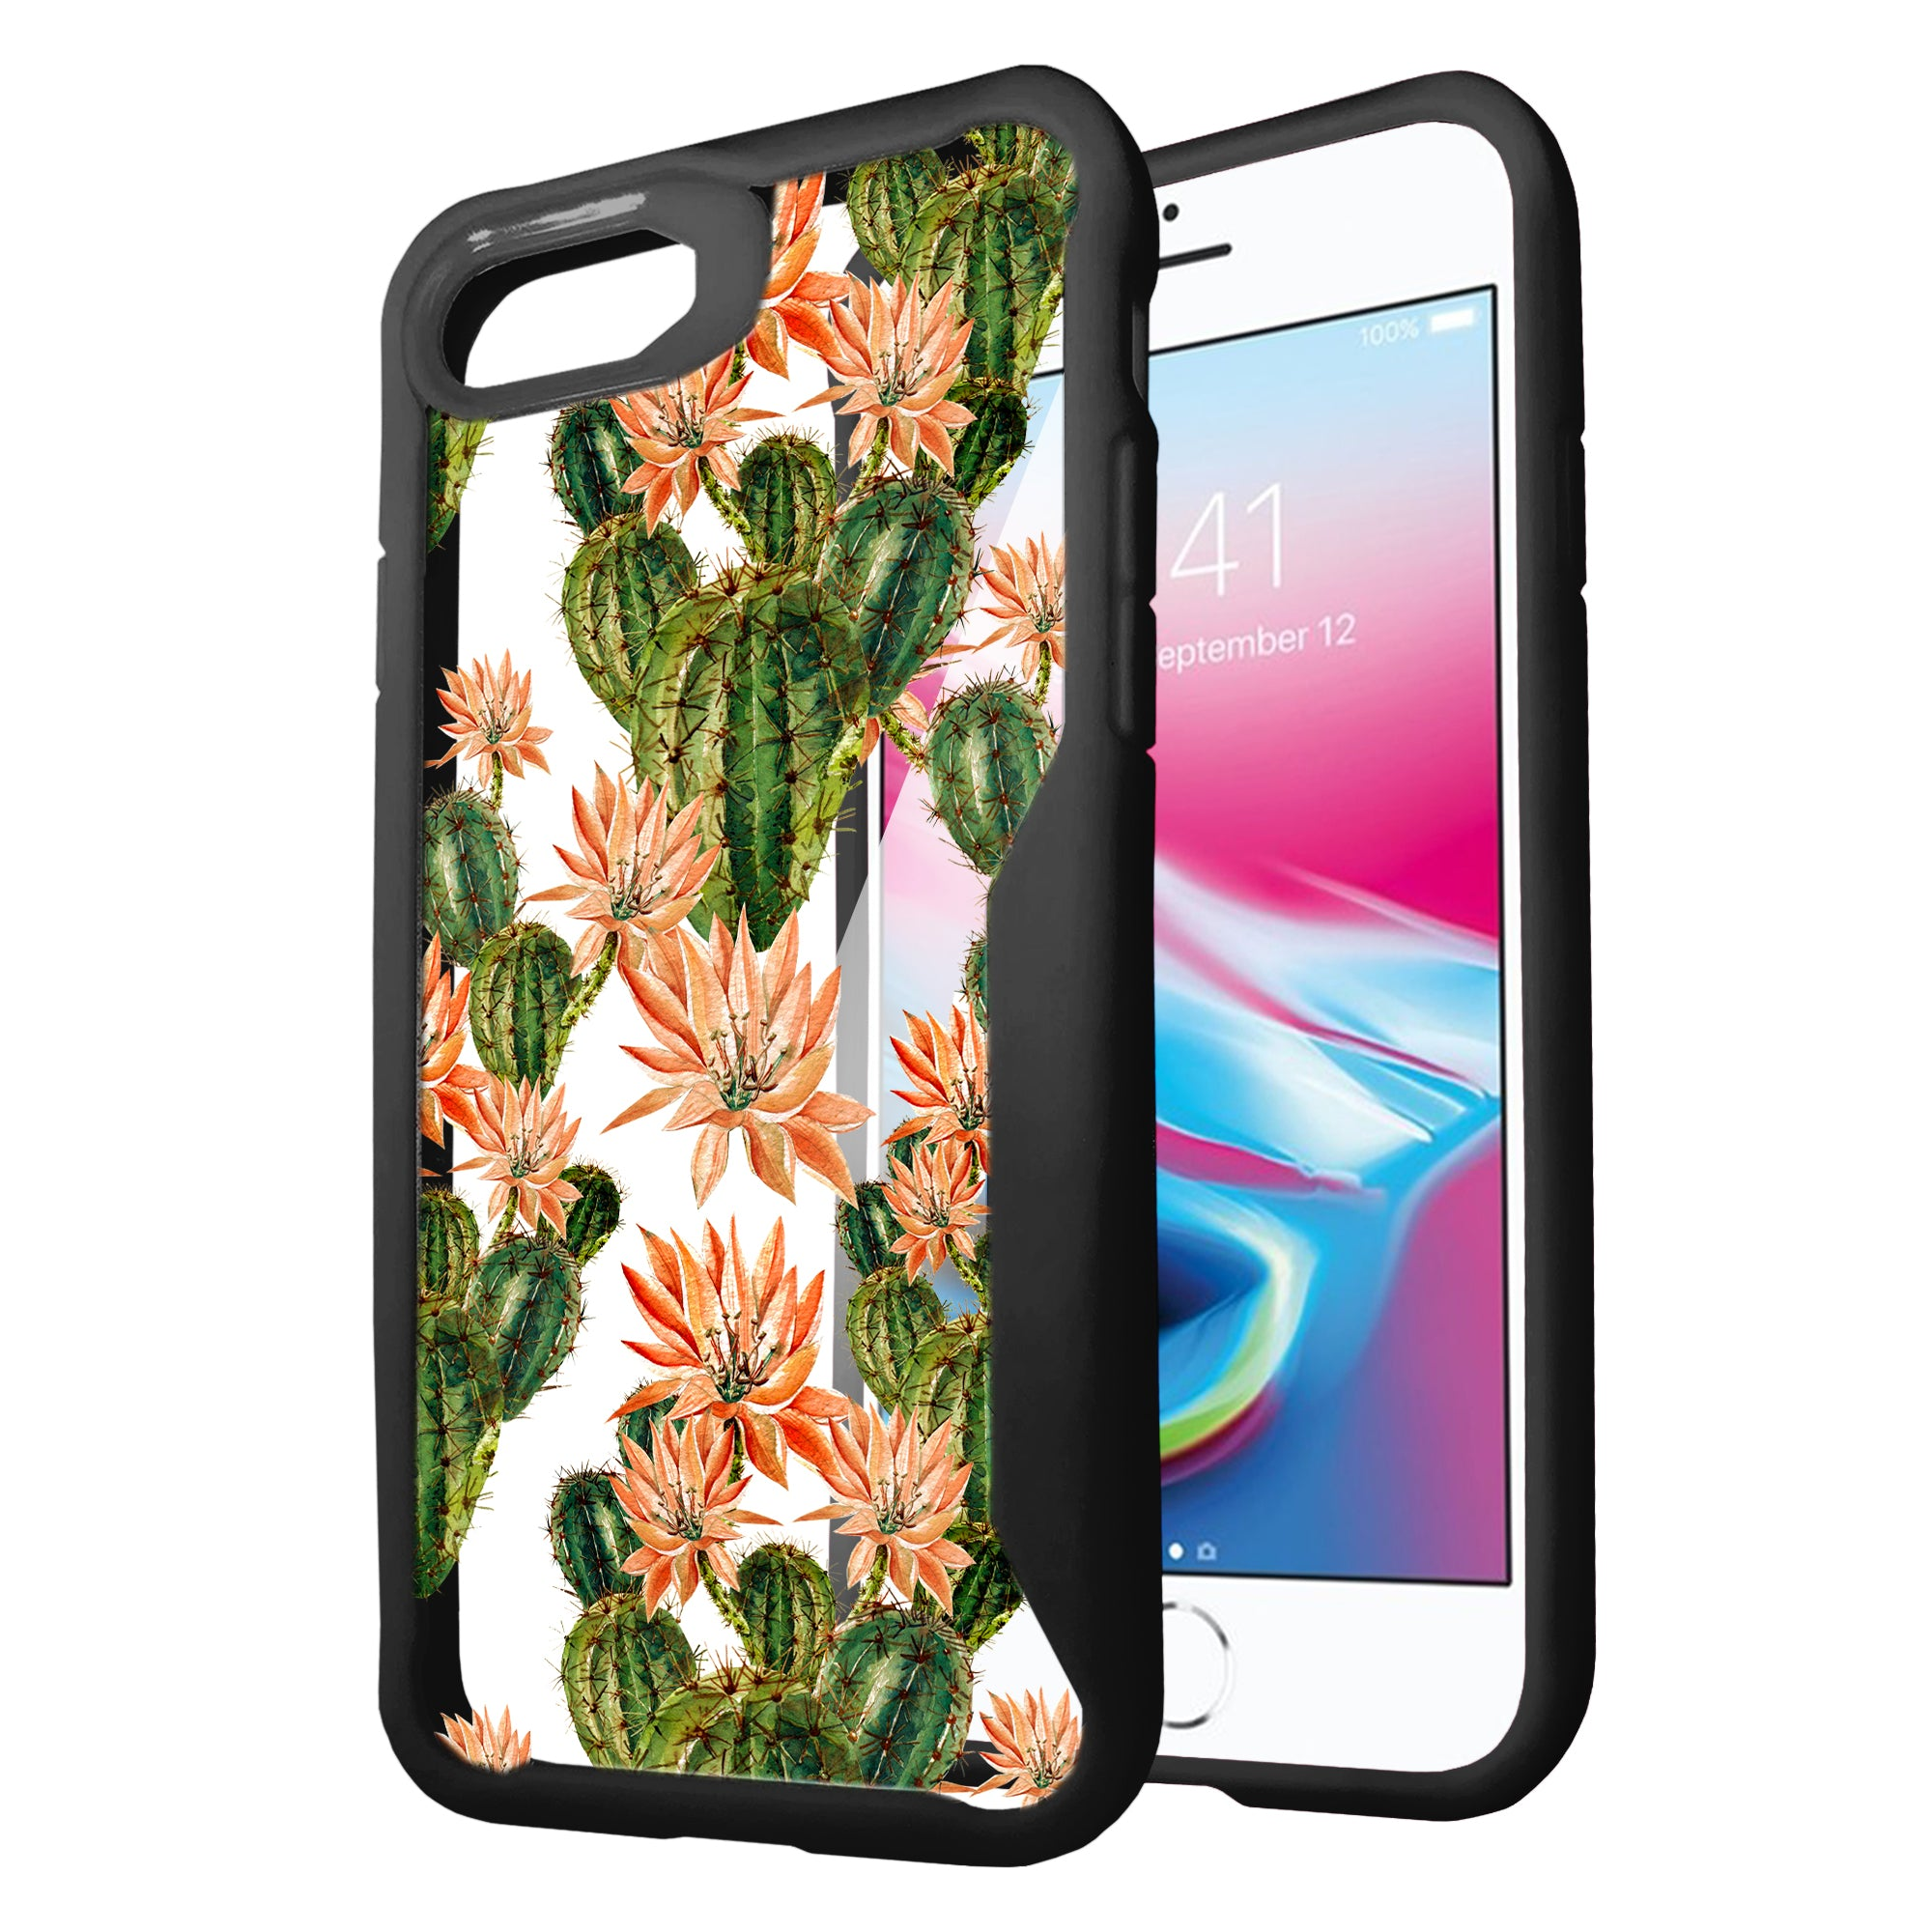 For-Apple-iPhone-7-iPhone-8-Clear-Case-w-Black-Silicone-Edges-Floral-Design thumbnail 17